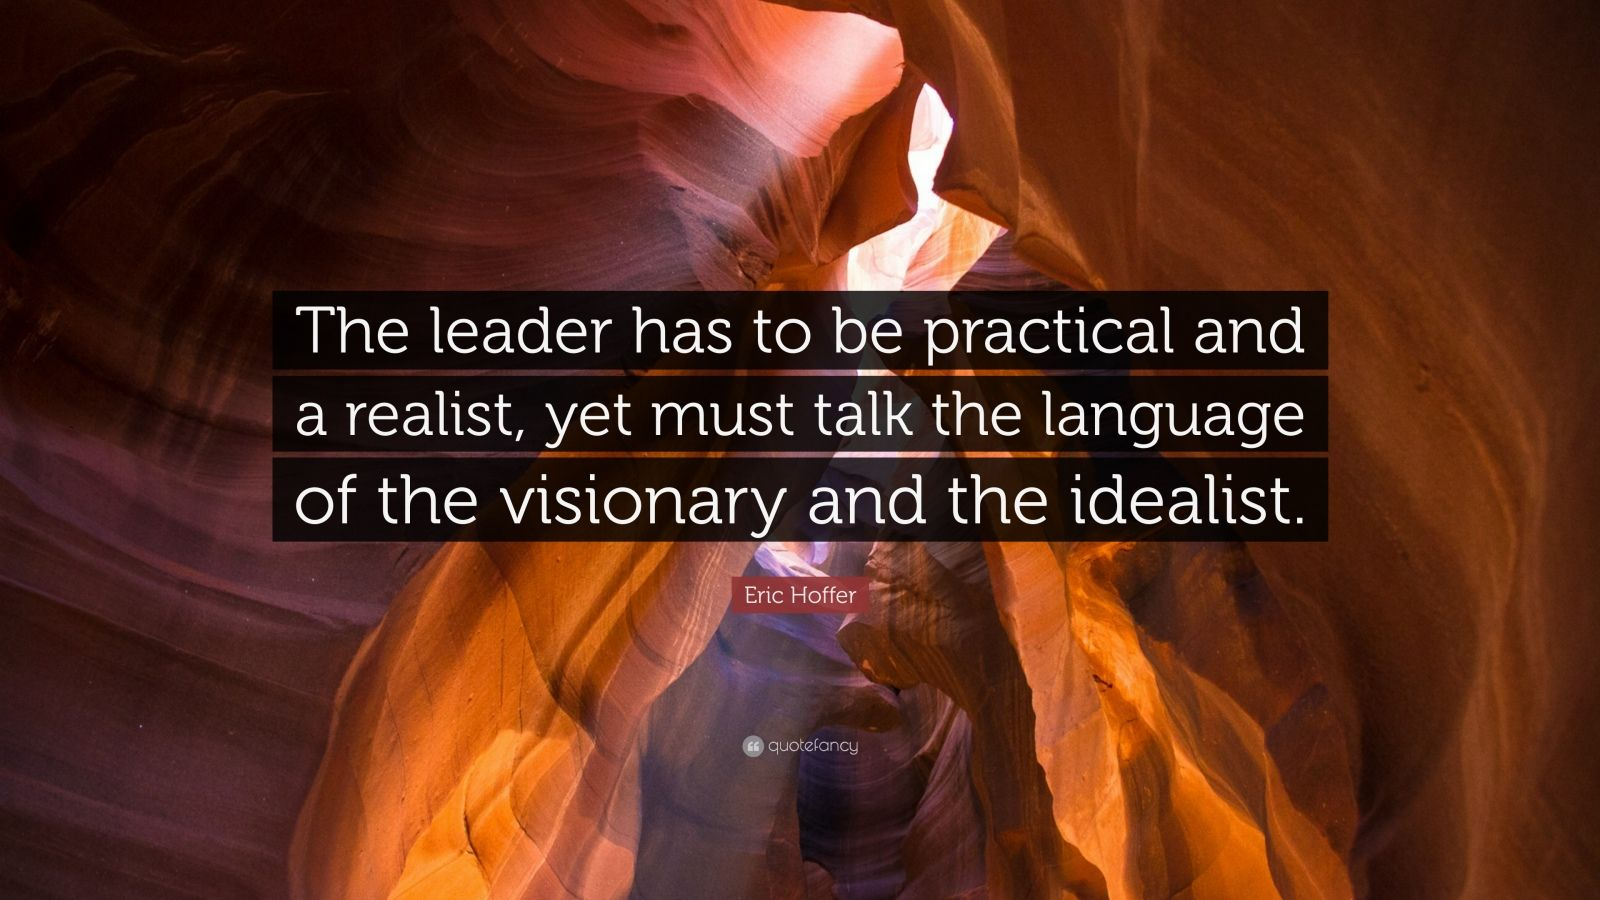 """Eric Hoffer Quote: """"The leader has to be practical and a realist, yet must talk the language of the visionary and the idealist."""""""